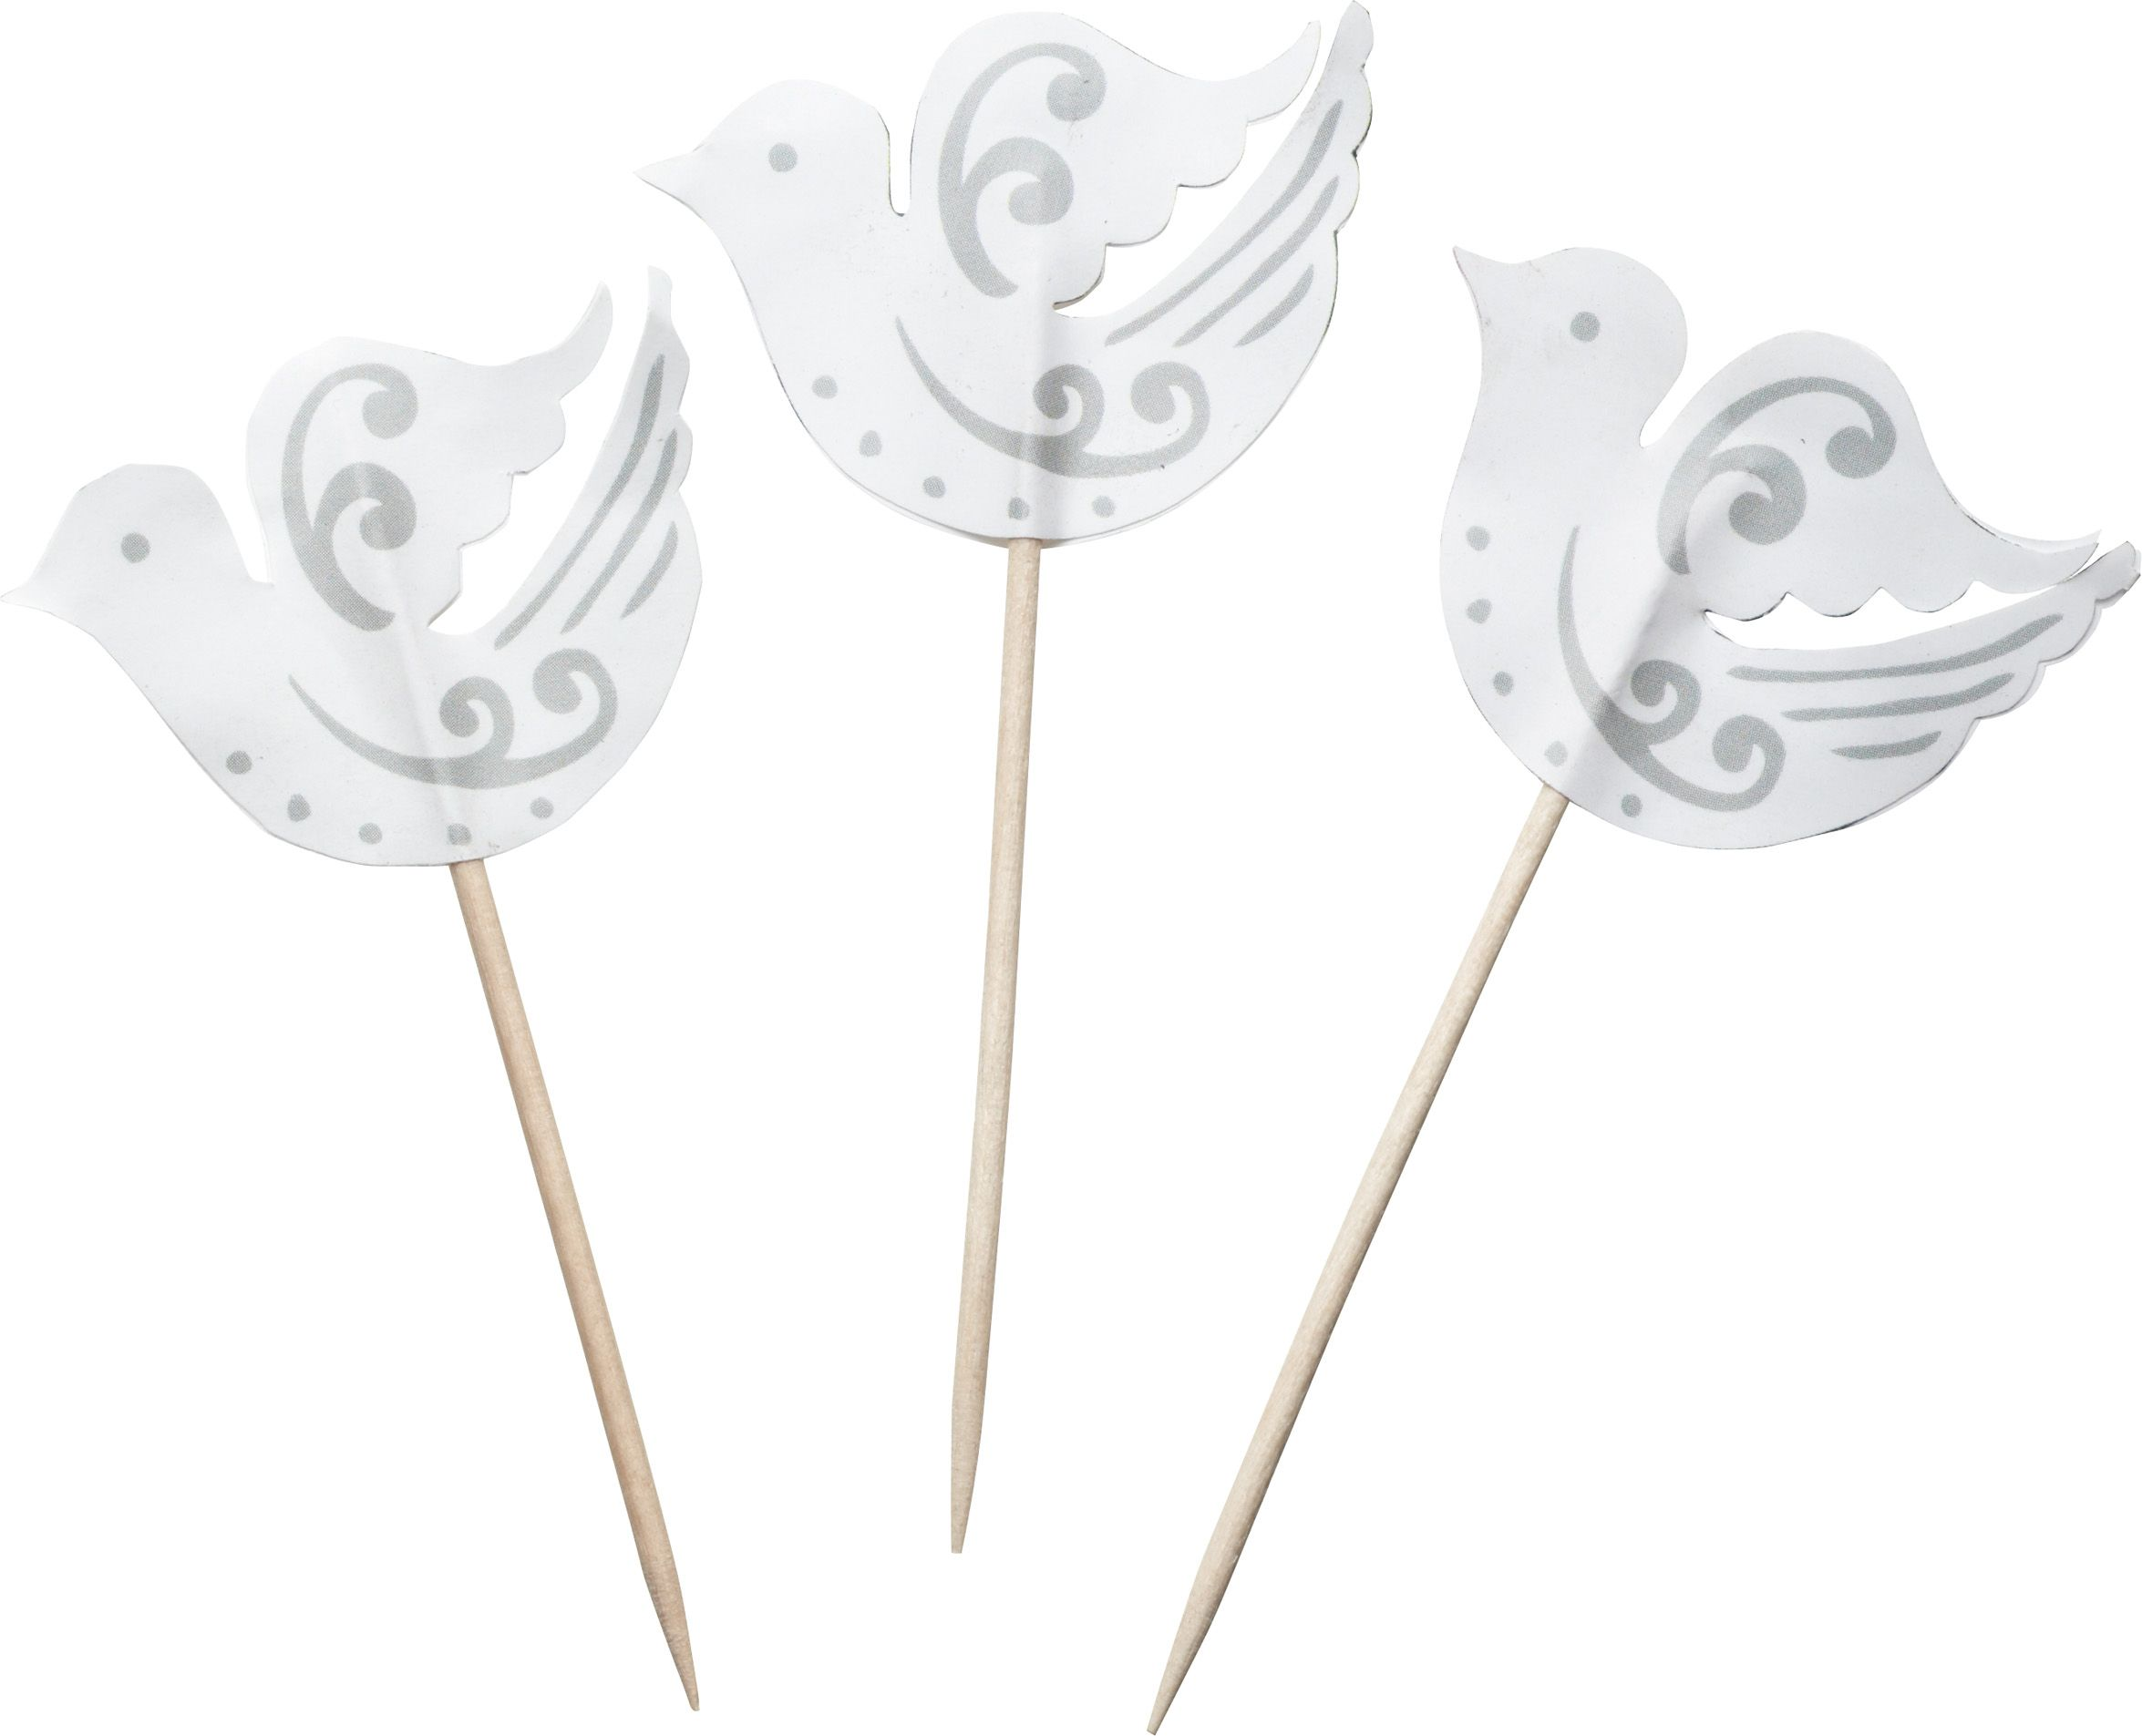 Silver cupcake decorating kit